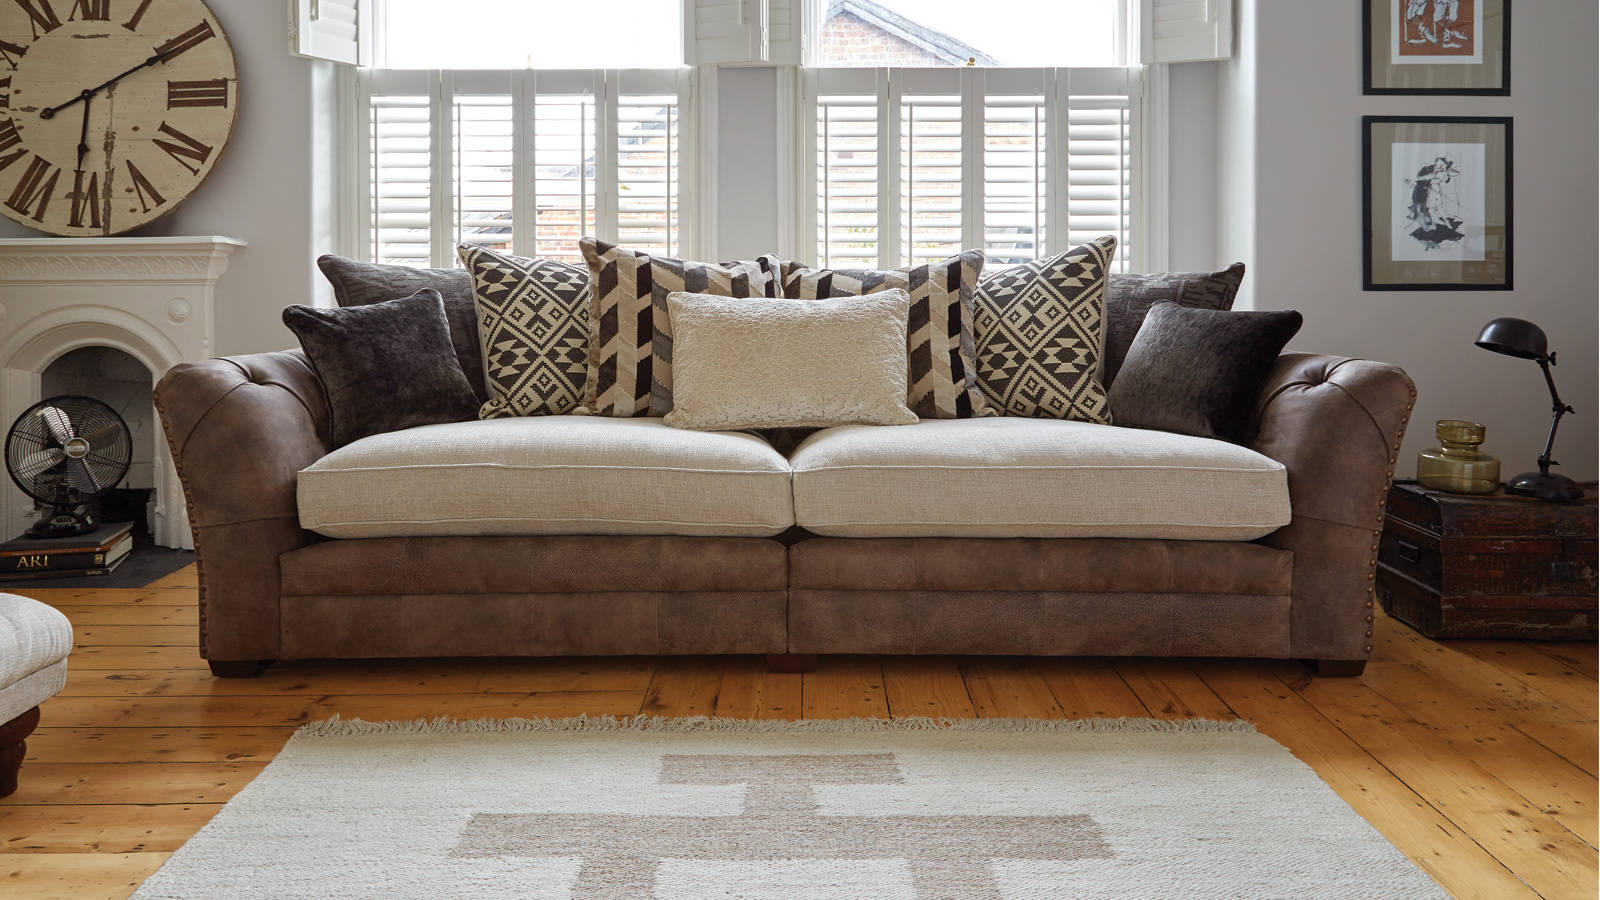 The Magnificent Split 4 Seater Sofa Can Be Taken Apart For Total Ease Of  Access So You Can Feel At Home On The Paloma Sofa You Love.